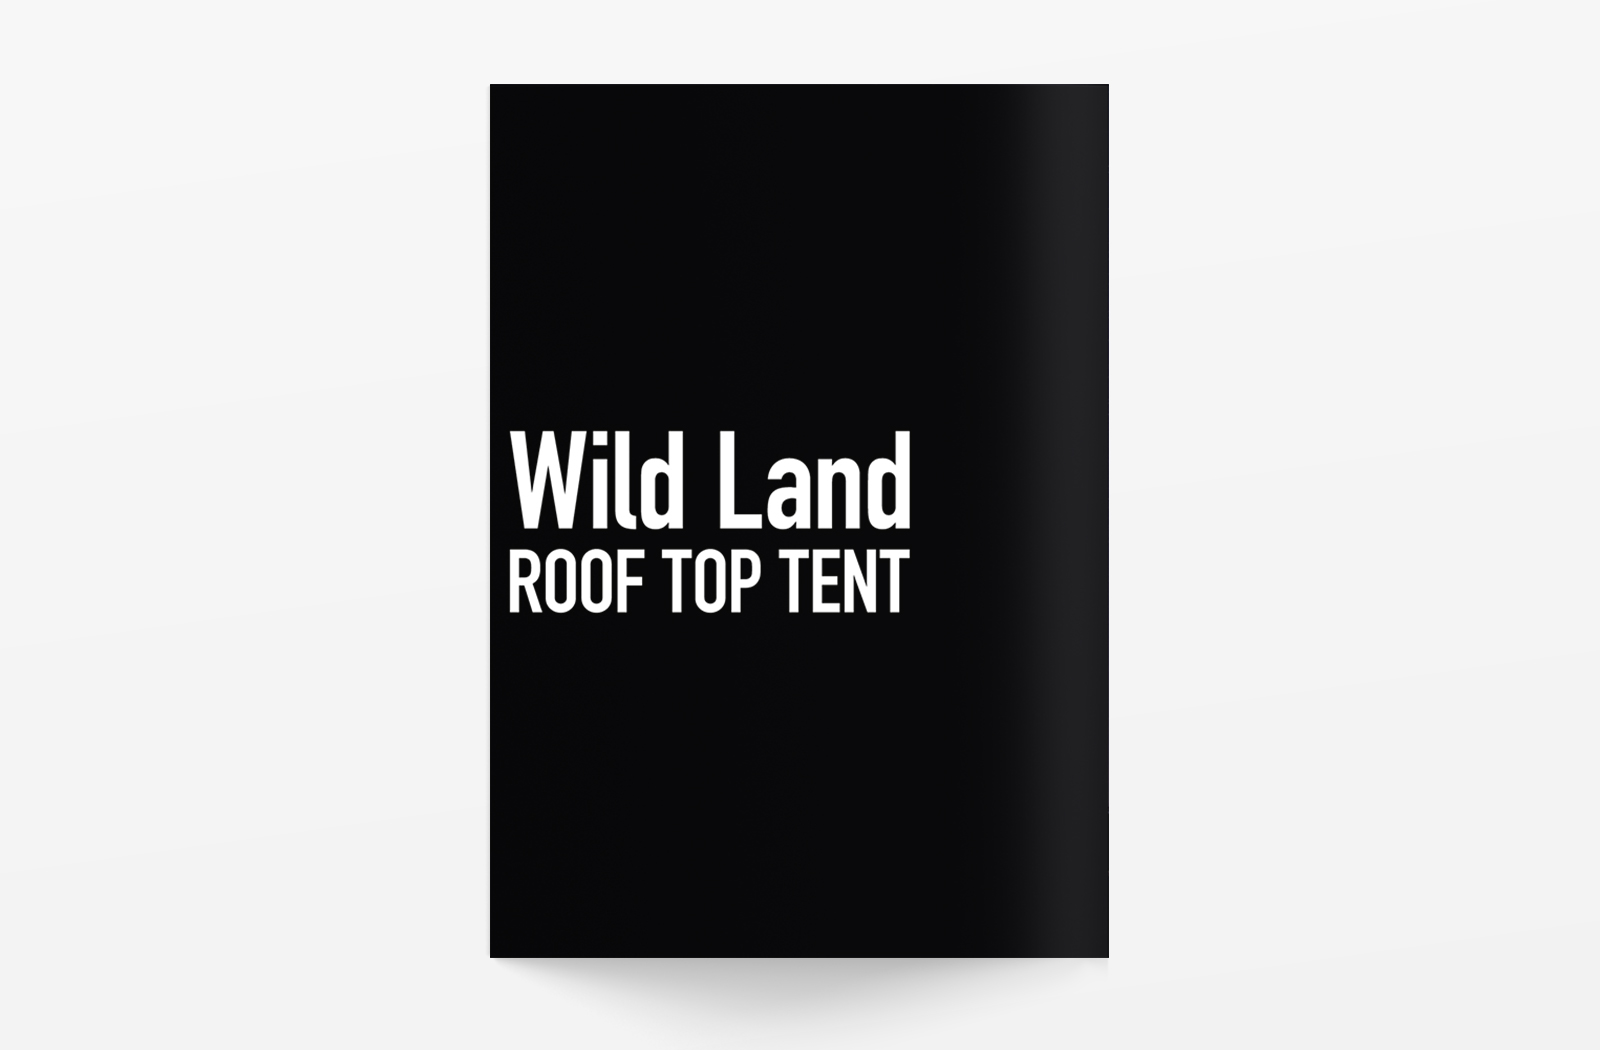 Wild Land ROOF TOP TENTのカタログデザイン